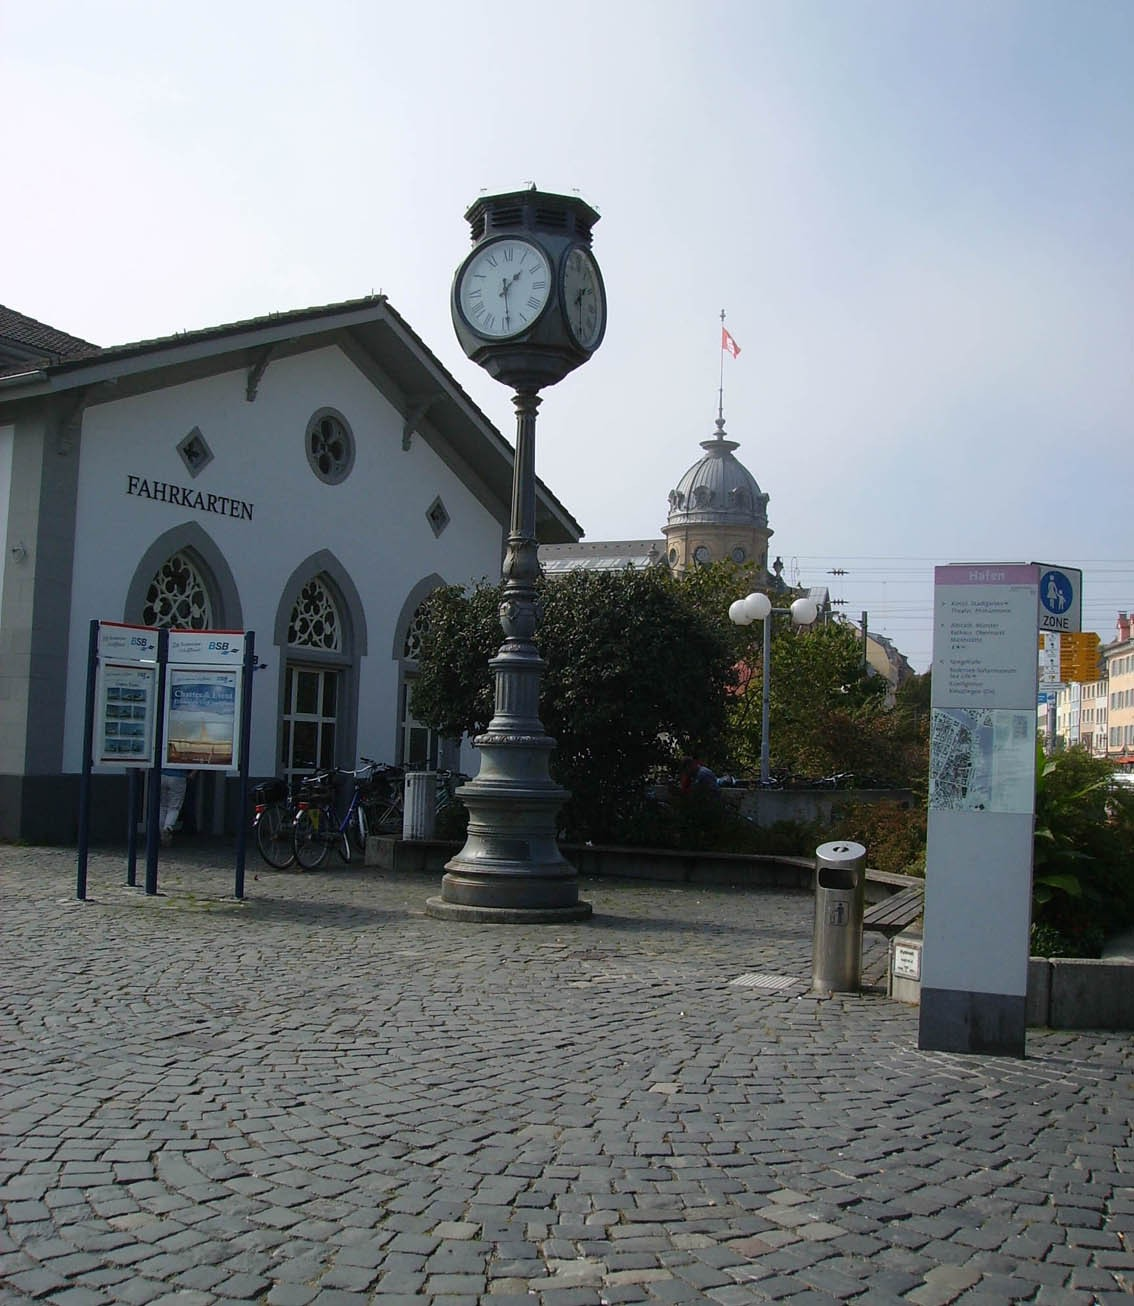 Point de recontre: l'horloge du port